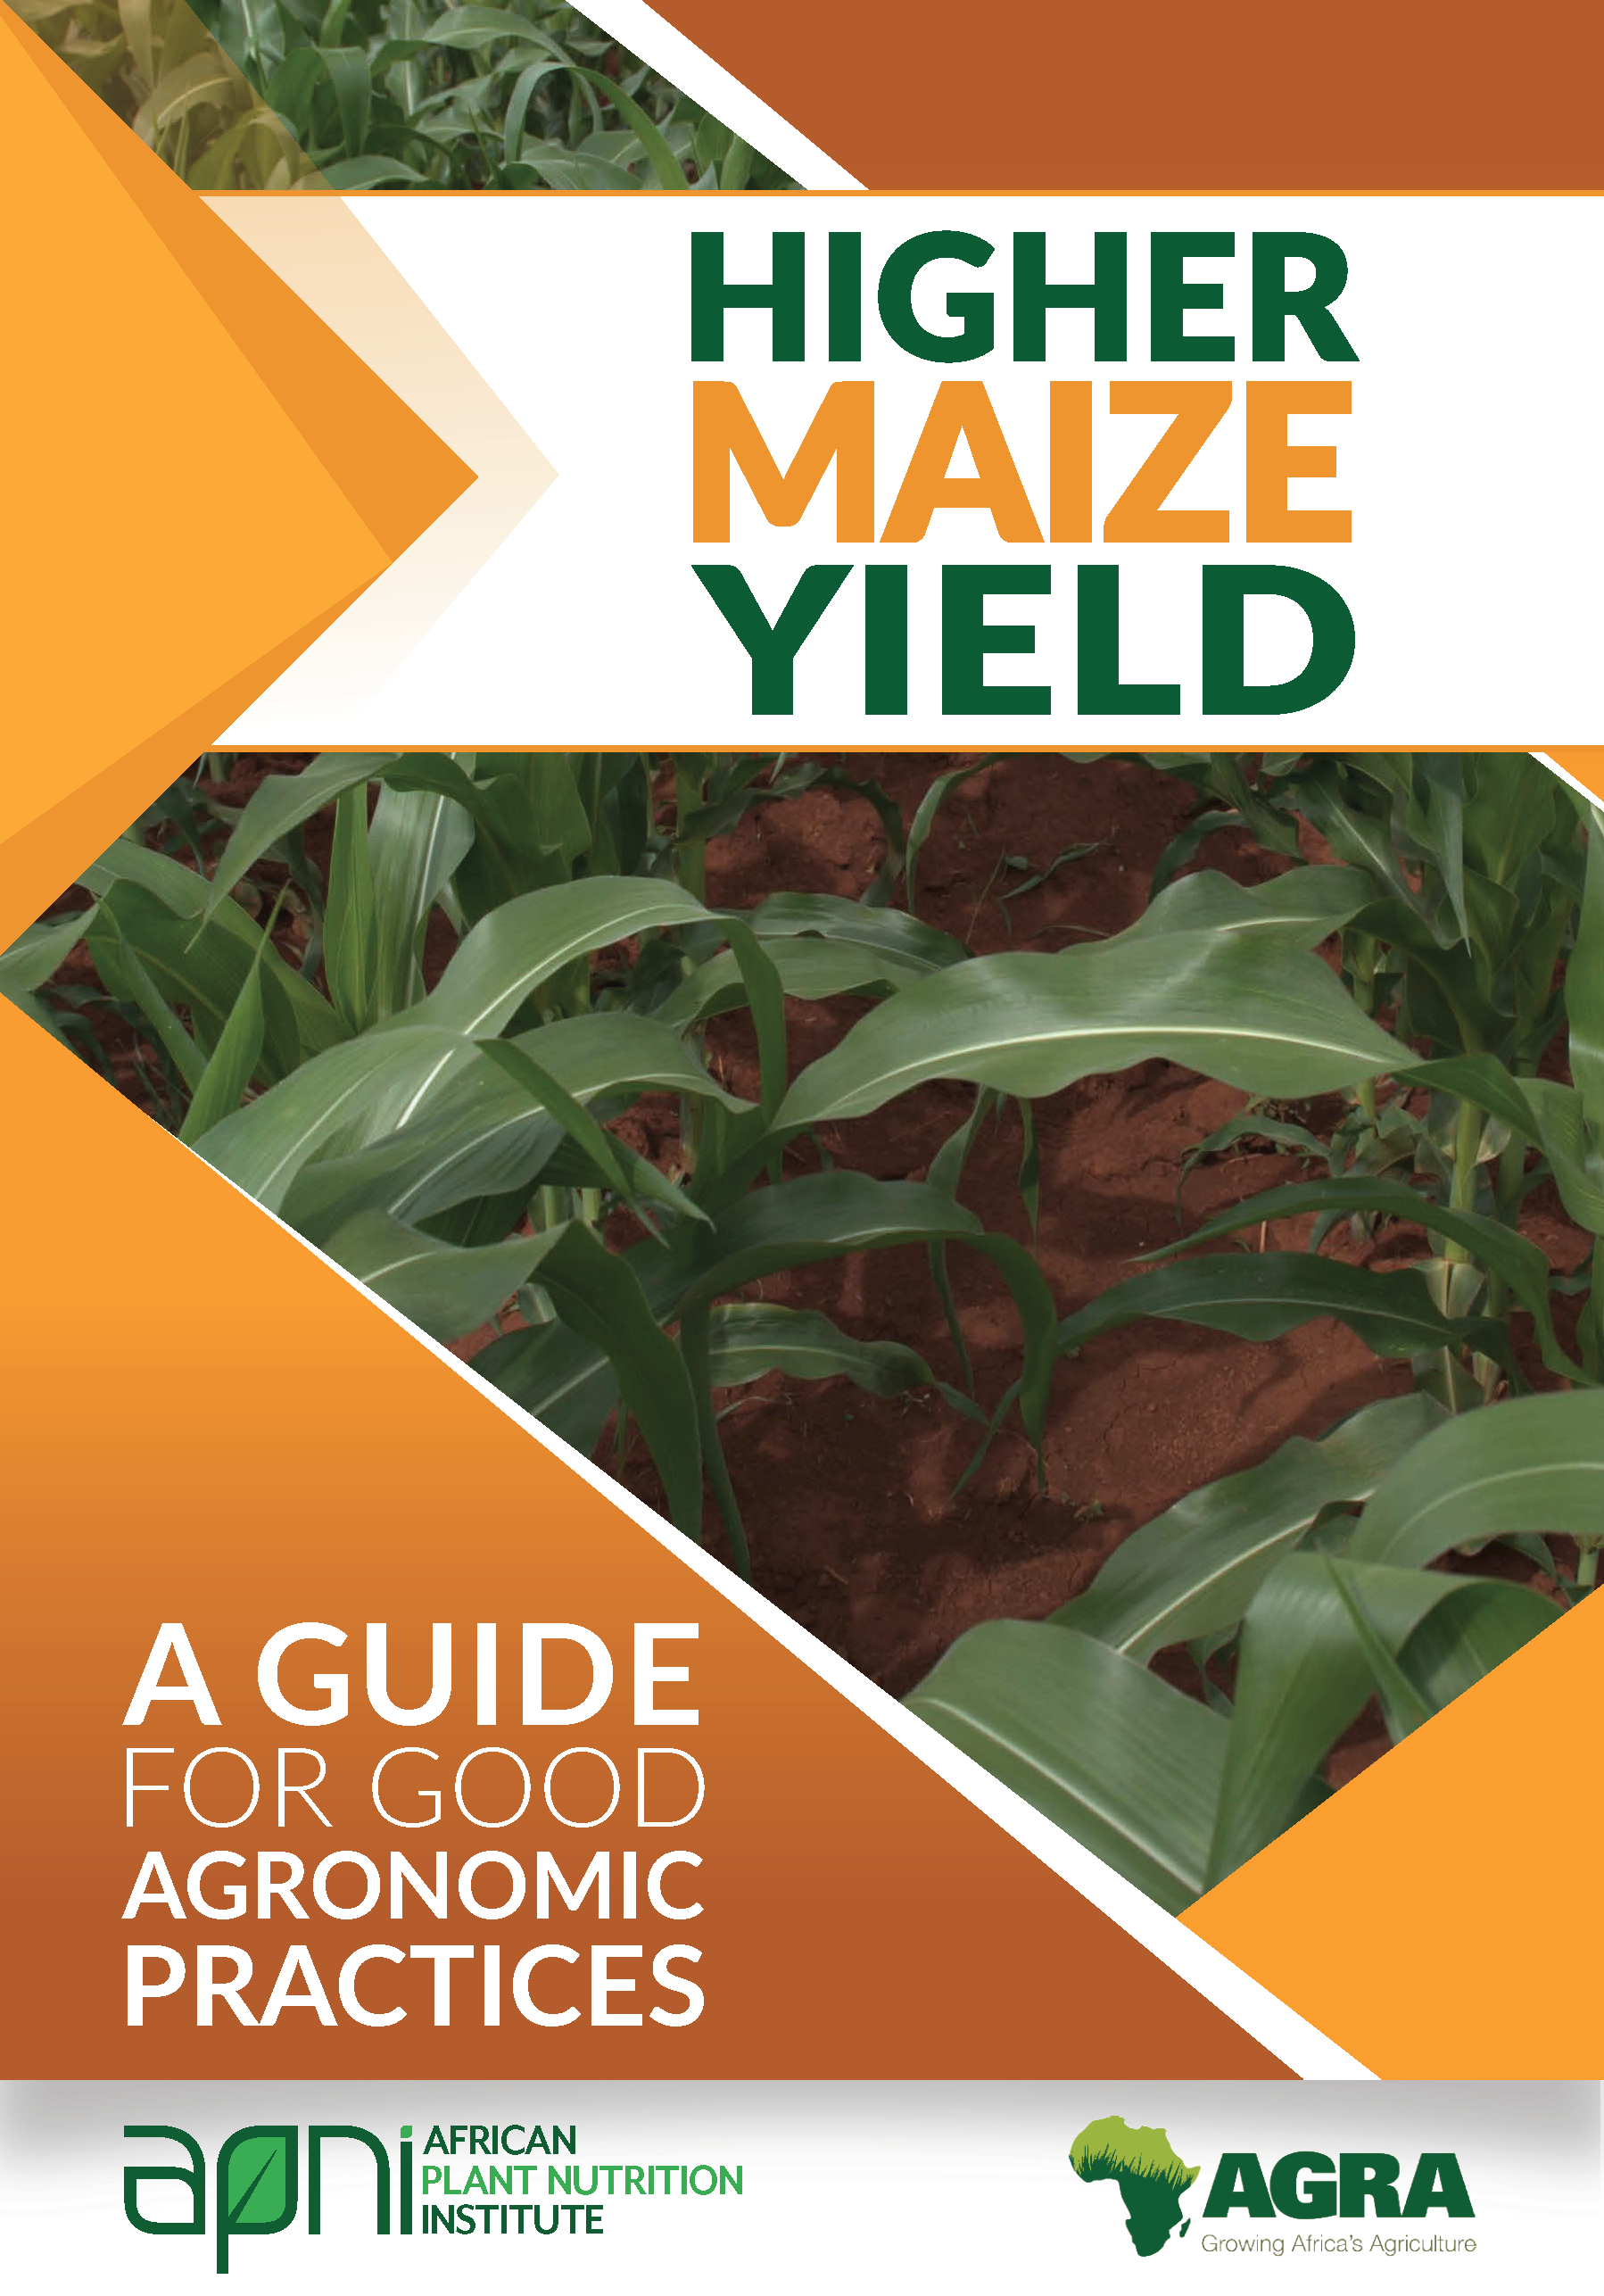 Higher Maize Yields: A guide for good agronomic practices Image